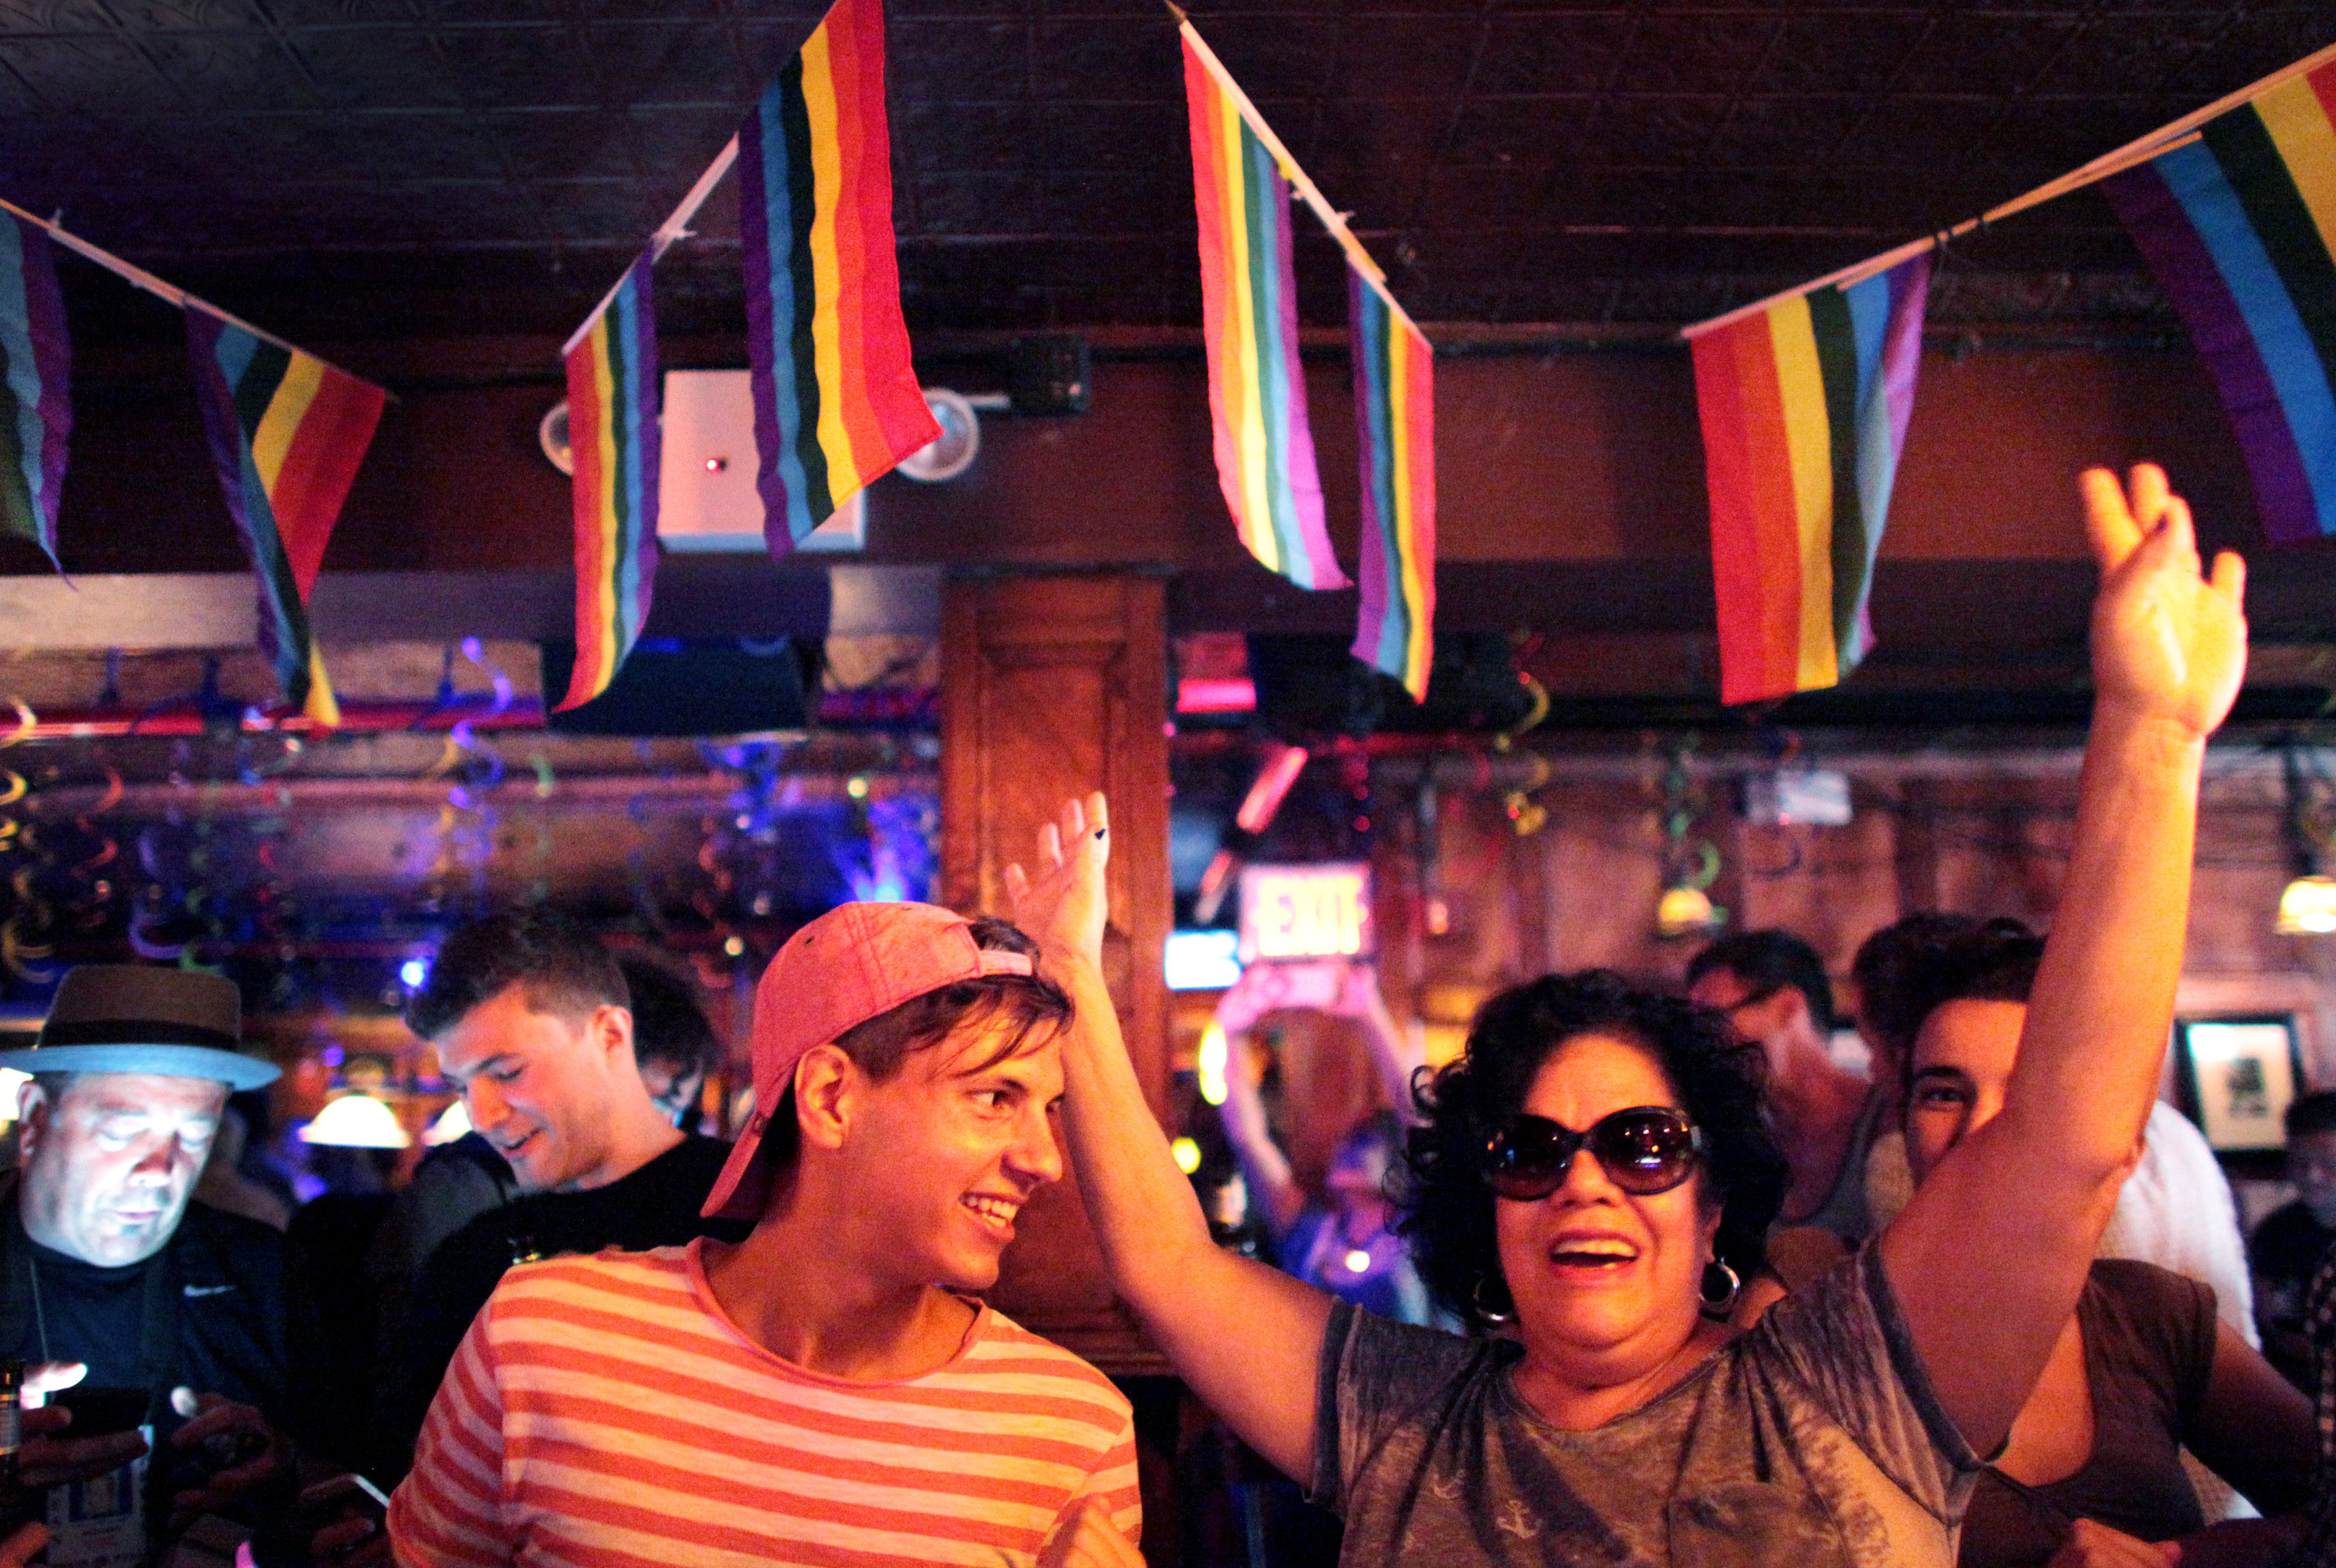 People celebrate inside the Stonewall Inn, an iconic gay bar recently granted historic landmark status, on June 26, 2015 in the West Village neighborhood in New York City.